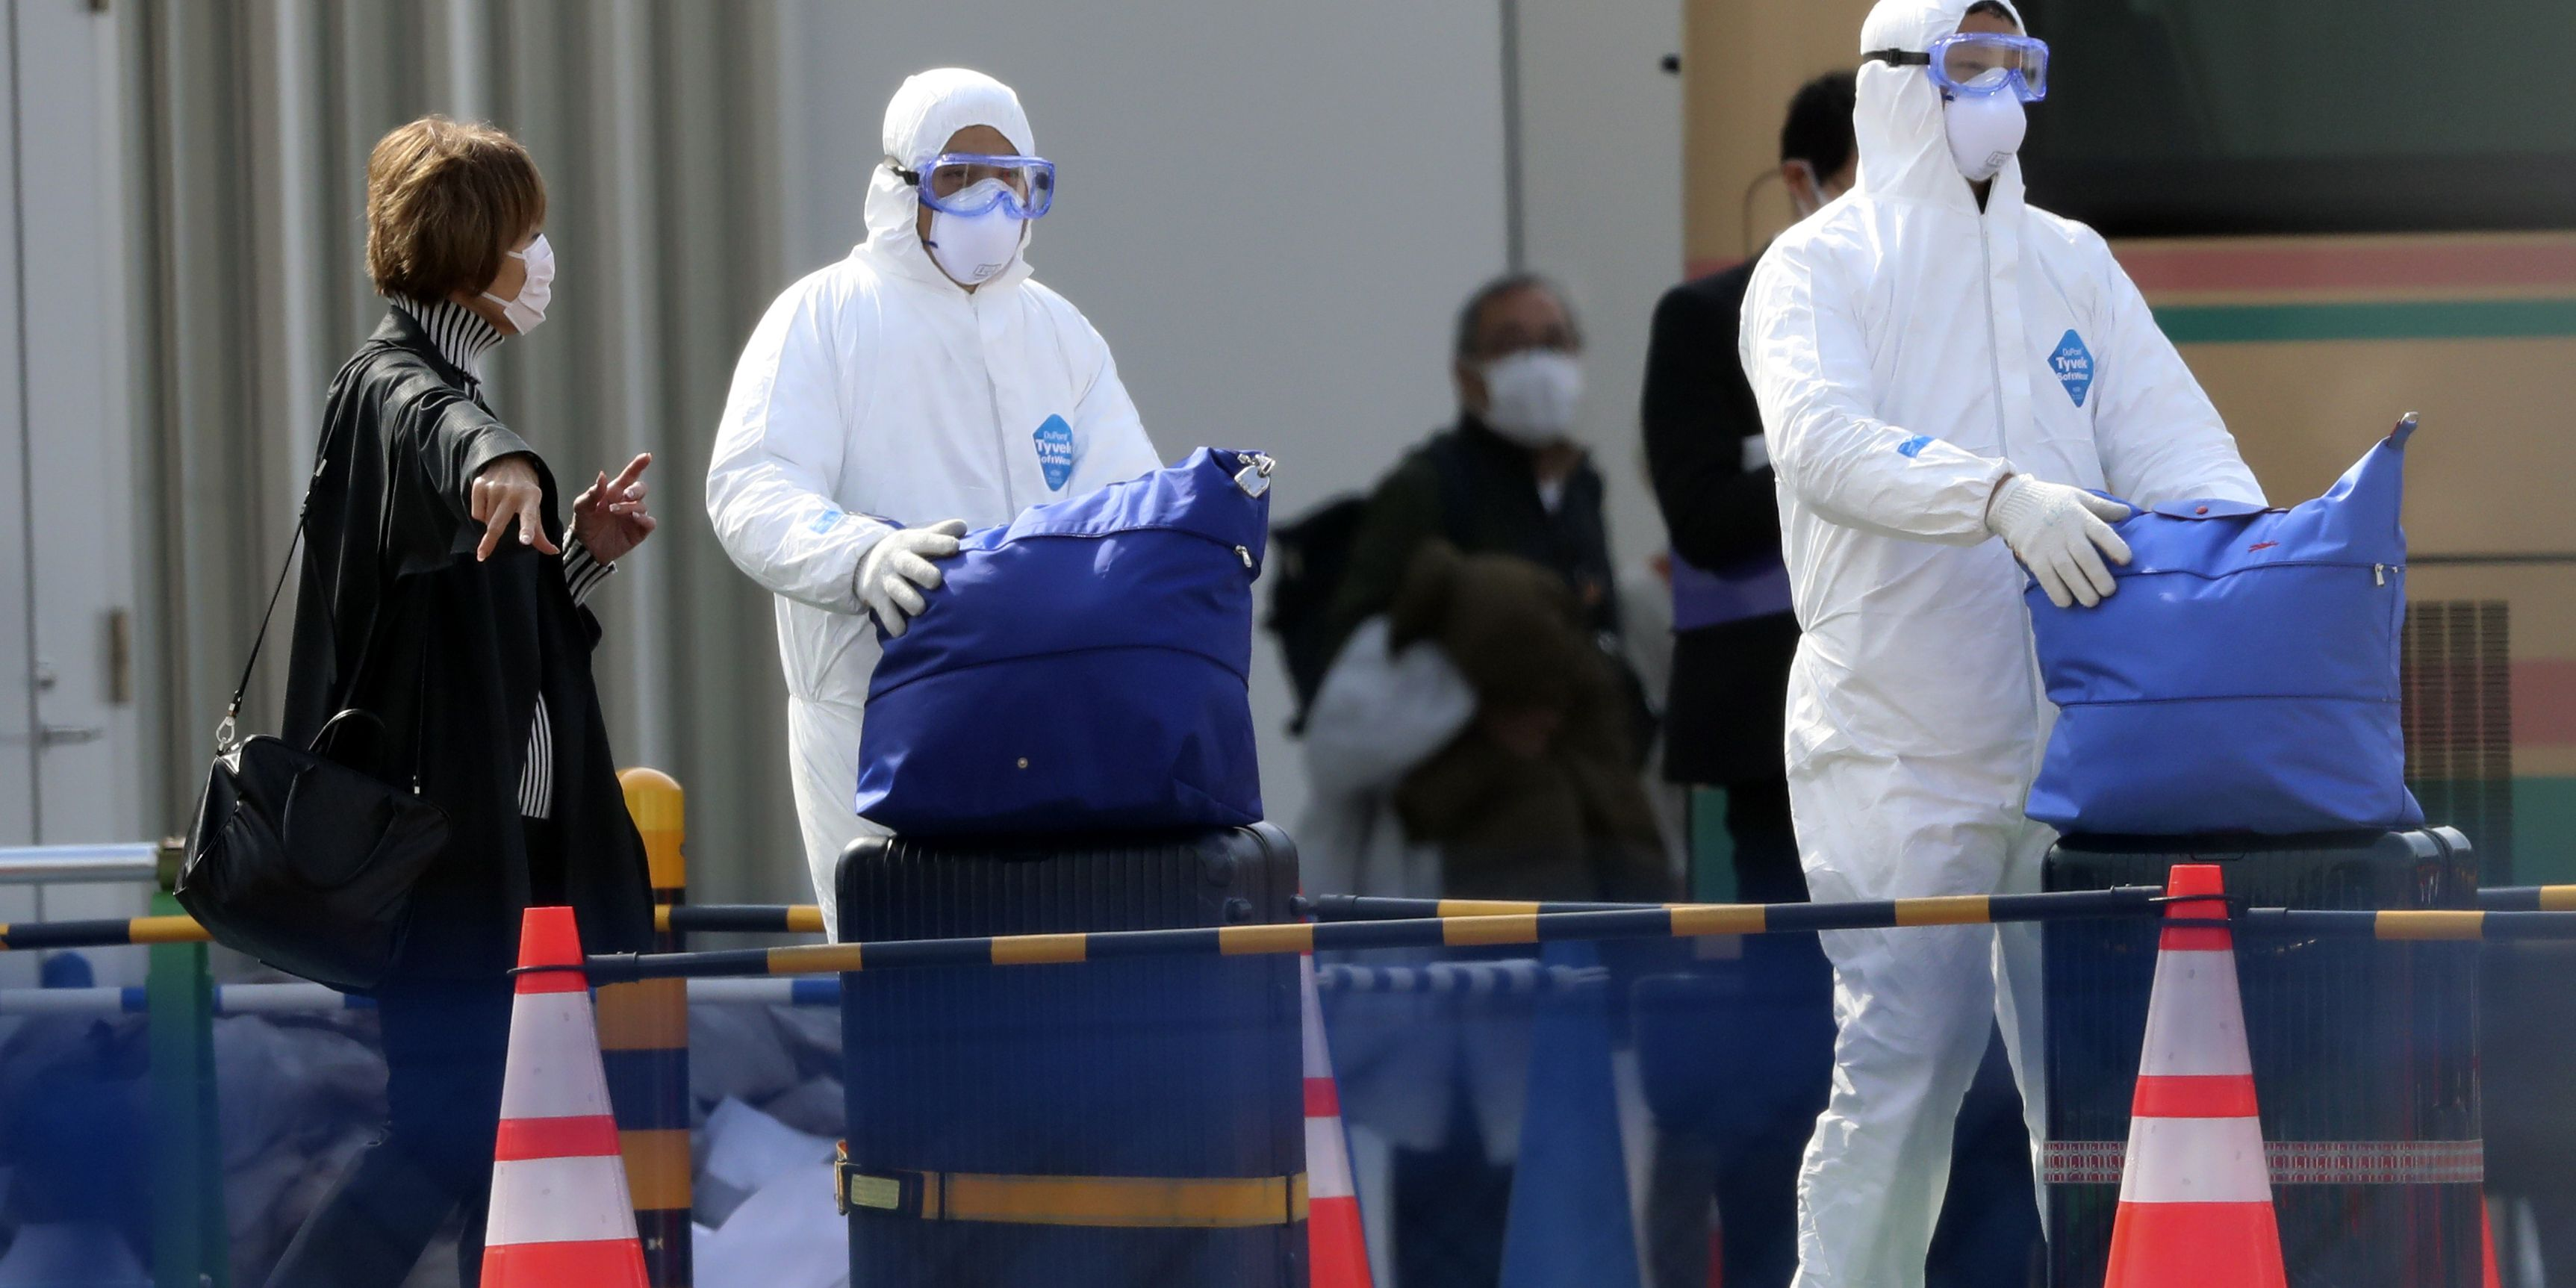 16 cruise ship evacuees being moved to US hospitals after tests for new virus